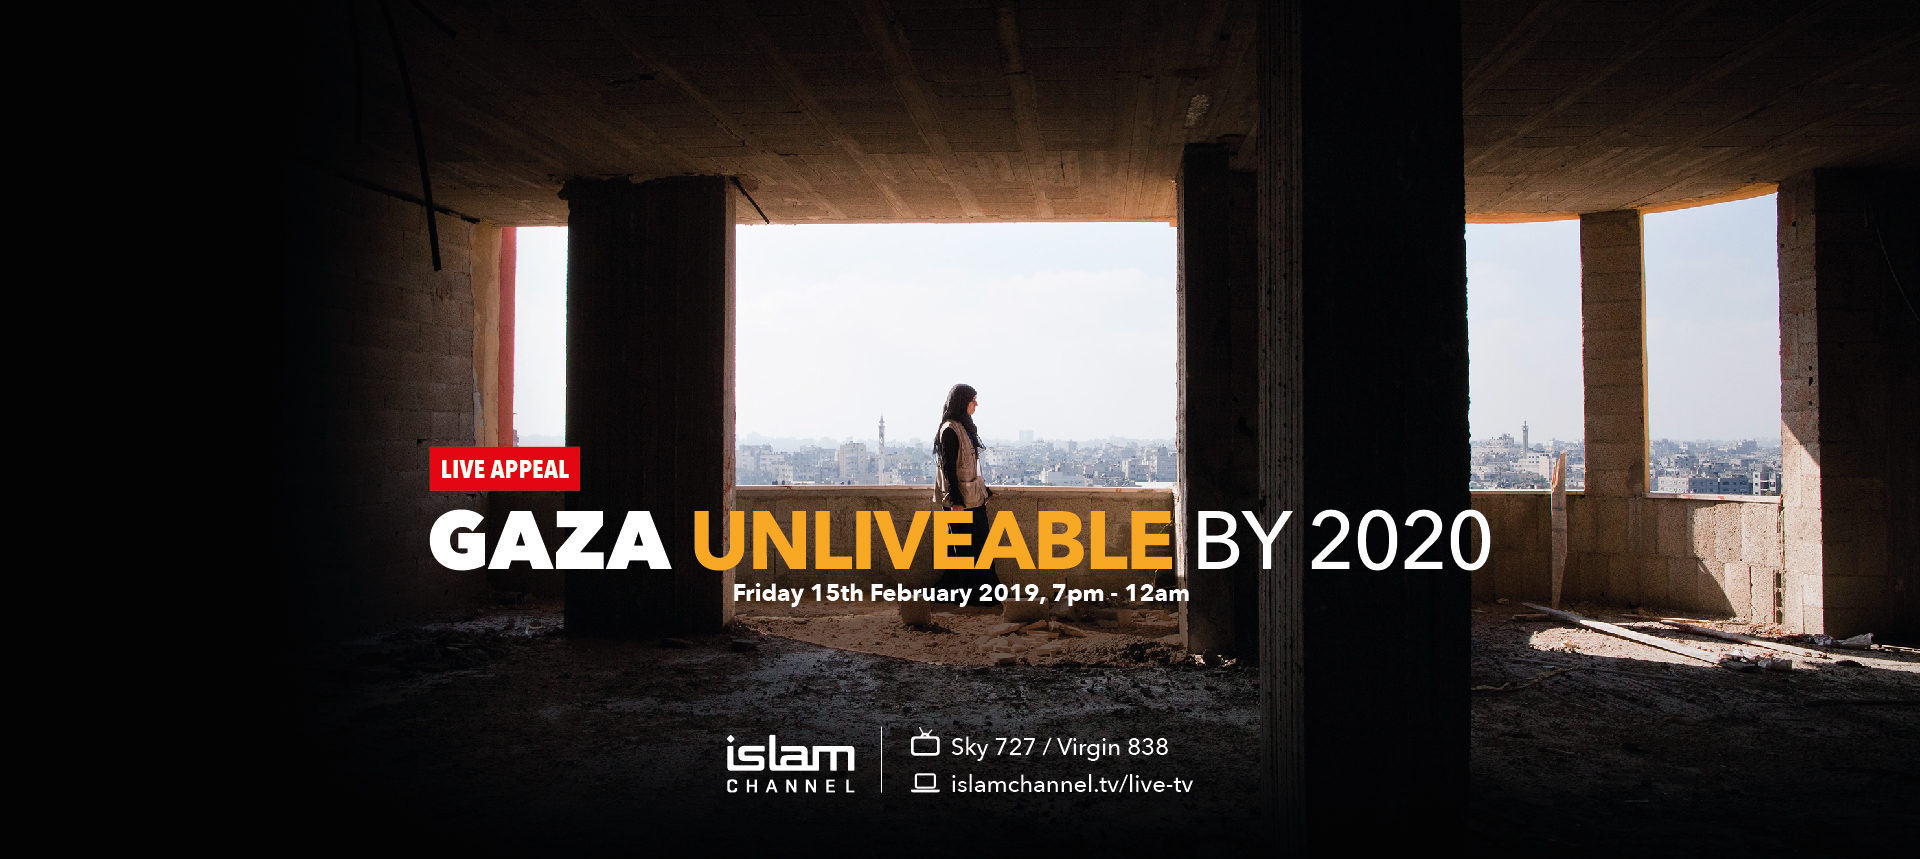 Interpal Live Appeal - Friday 15th February 2019 on Islam Channel